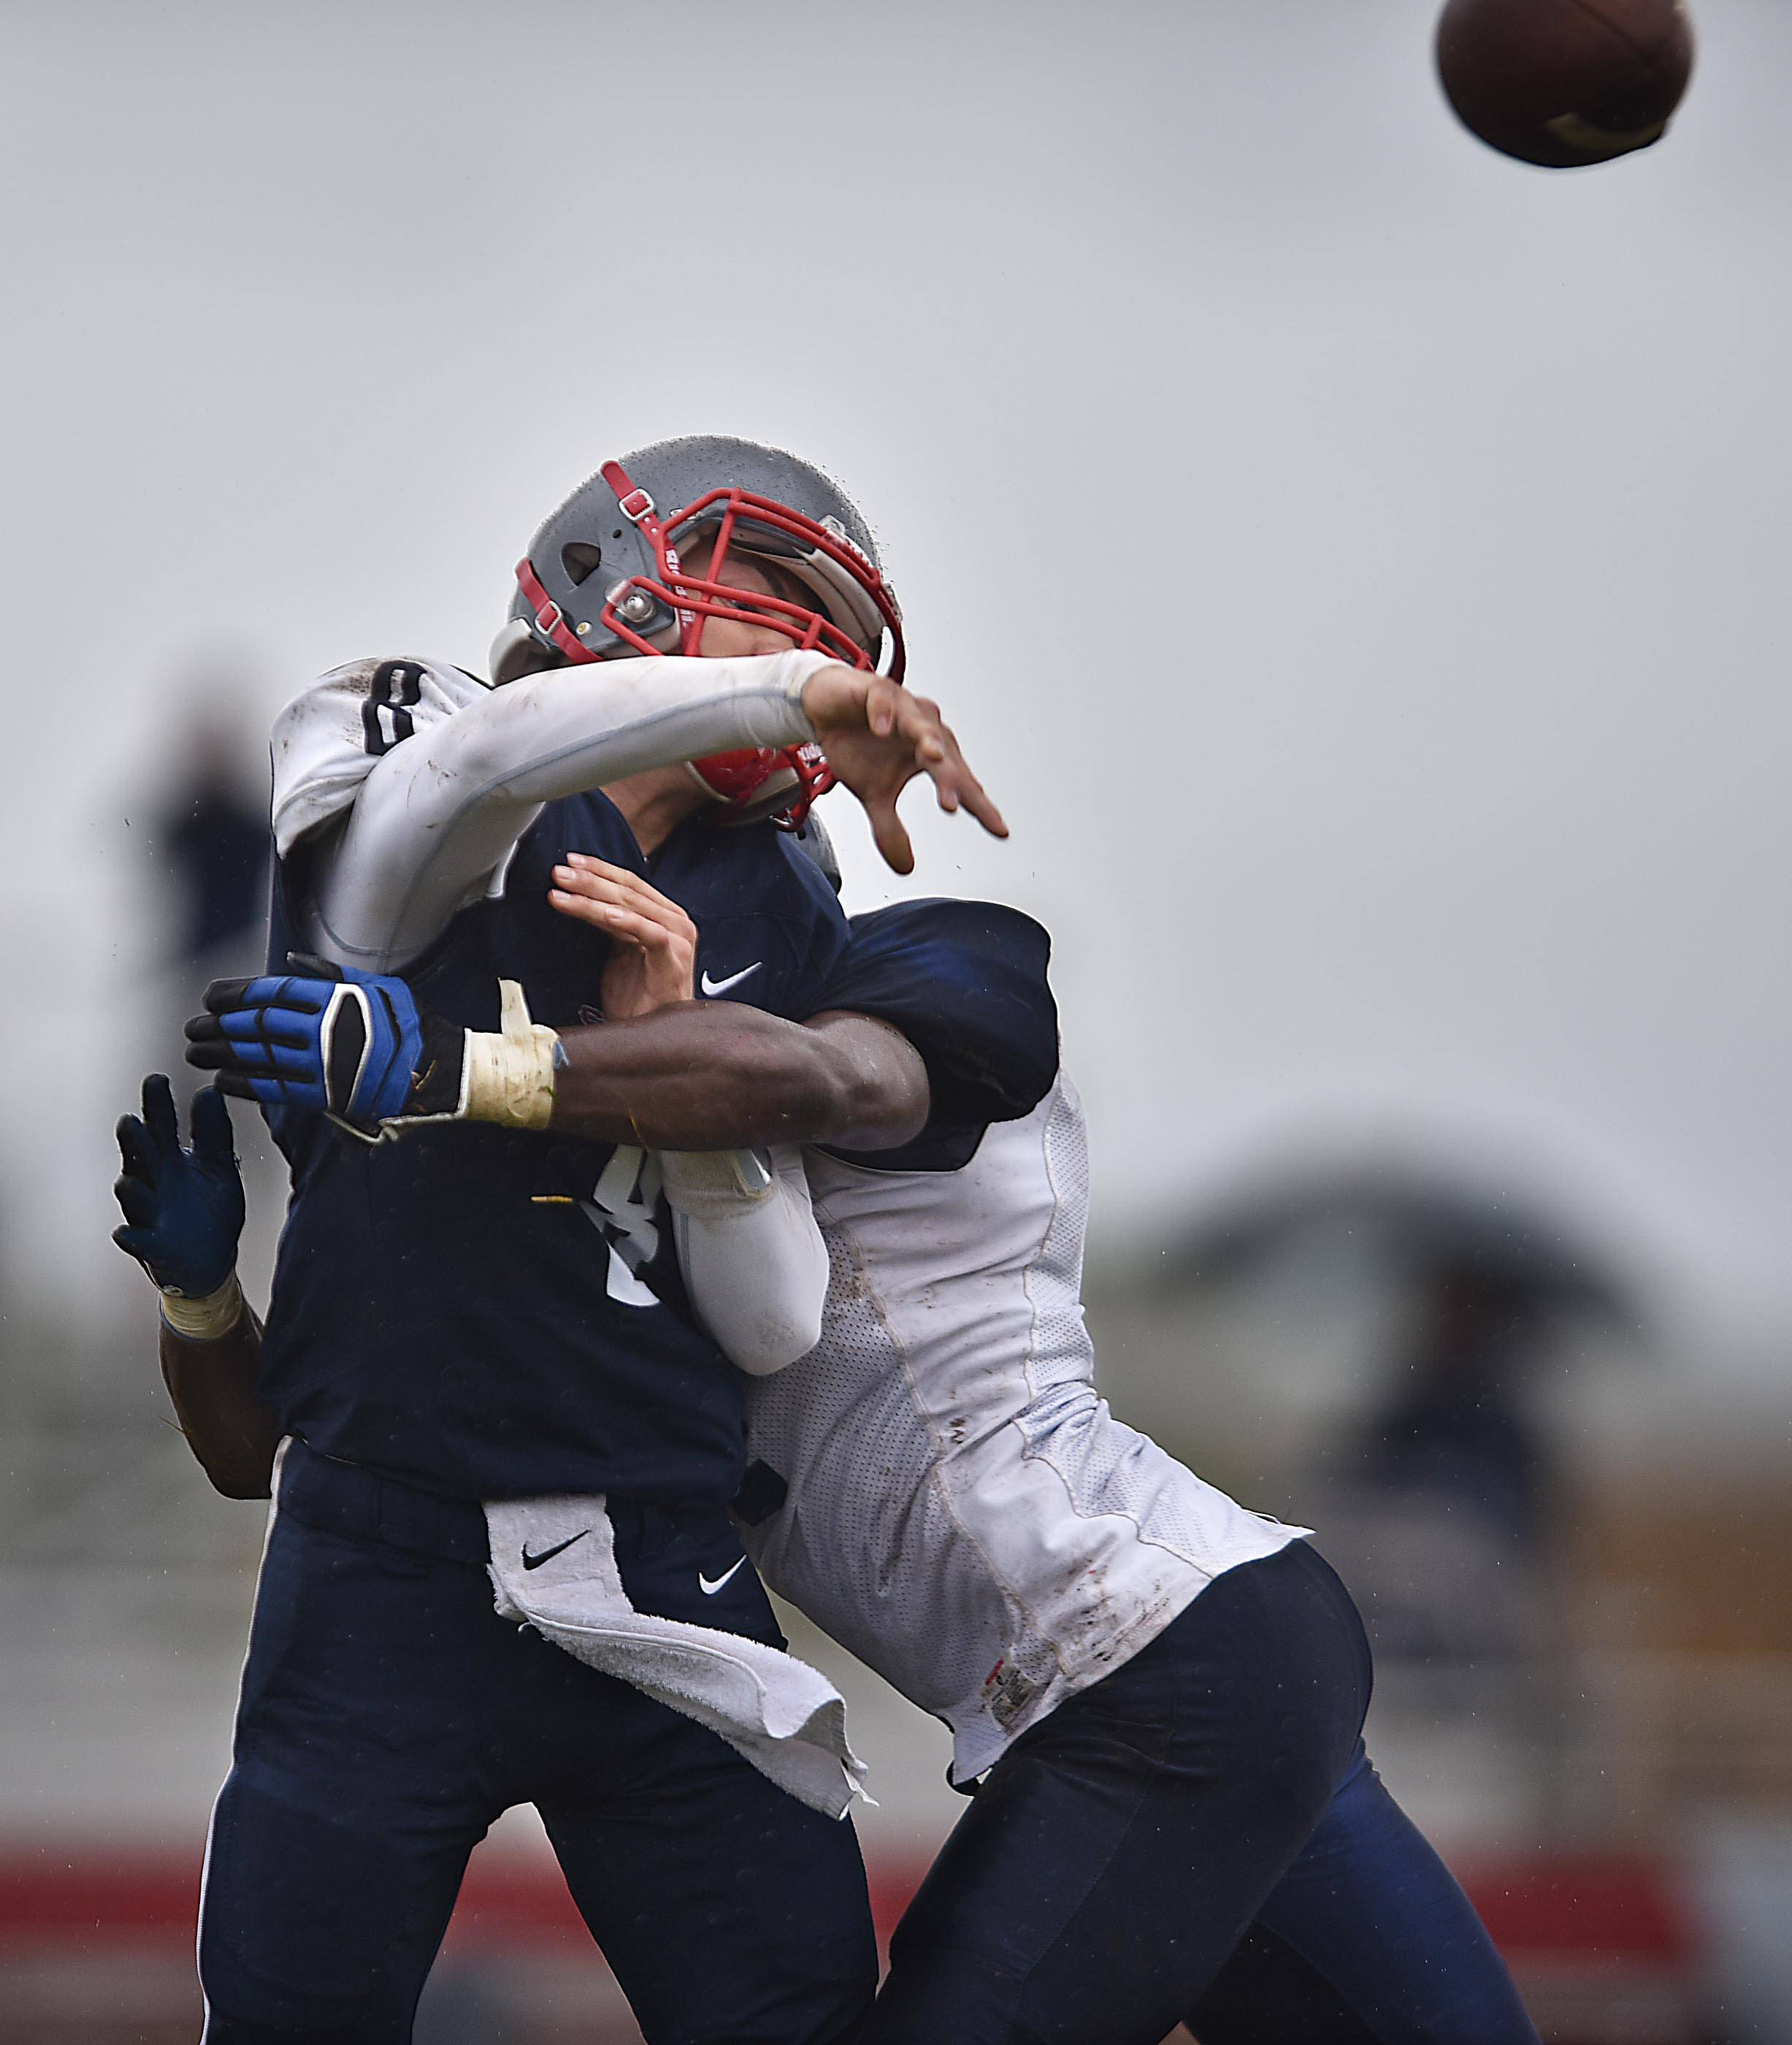 South Elgin's Nate Gomez is hit by West Chicago's Devonte Pascal as he delivers a first down pass to teammate Azxavier Salinas Saturday in South Elgin.